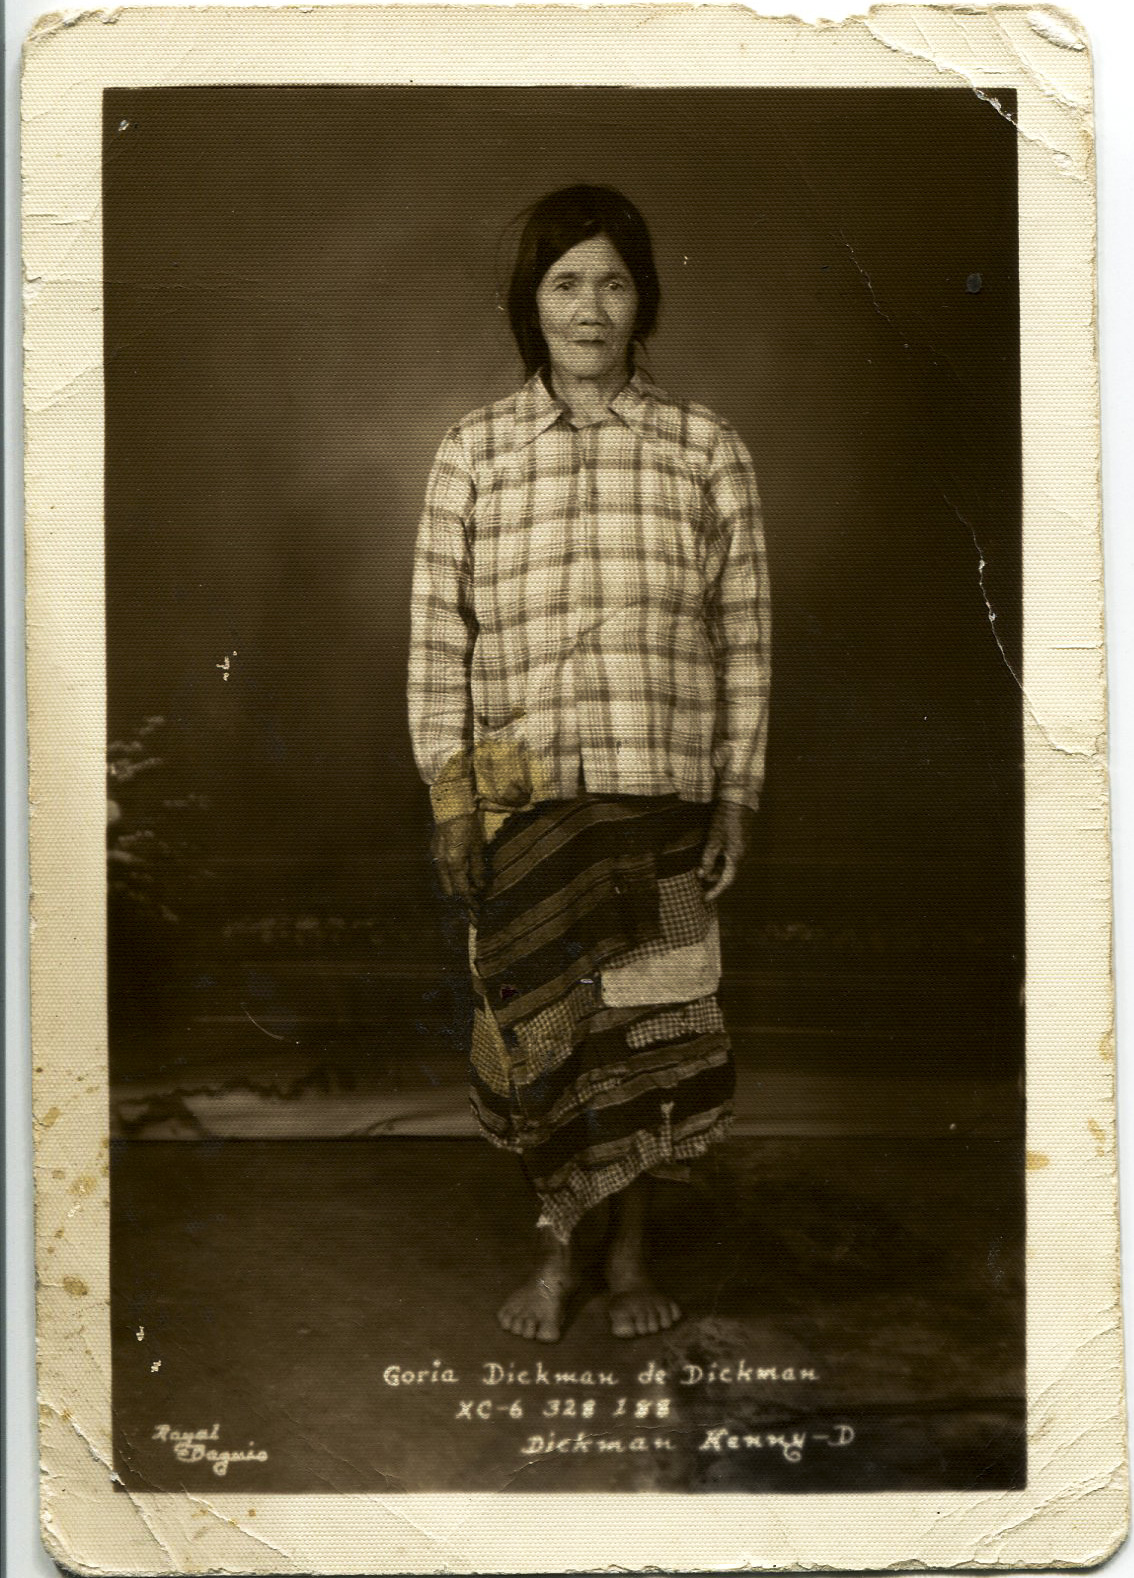 Gloria Dickman, Carol Lamen's great-grandmother, taken in Baguio, Philippines.   Any views, findings, conclusions, or recommendations expressed in this story do not necessarily represent those of the National Endowment for the Humanities. [Copyright] Field Museum of Natural History - CC BY-NC